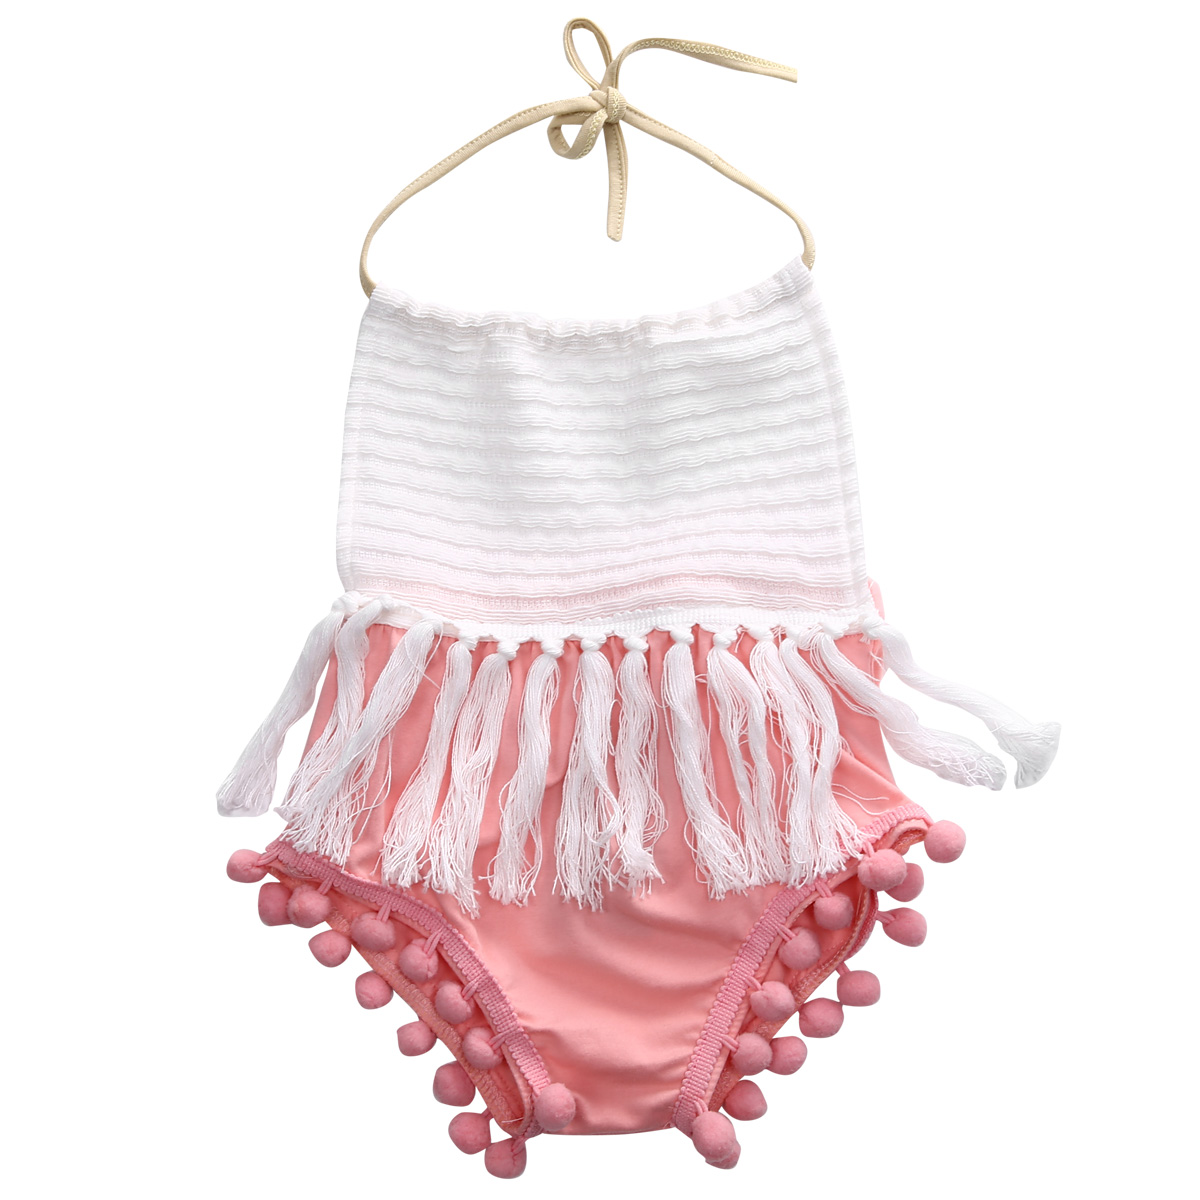 Fashion 2018 Newborn Toddler Baby Girls Patchwork Halter Tassels Strap   Romper   Jumpsuit Outfit Clothes